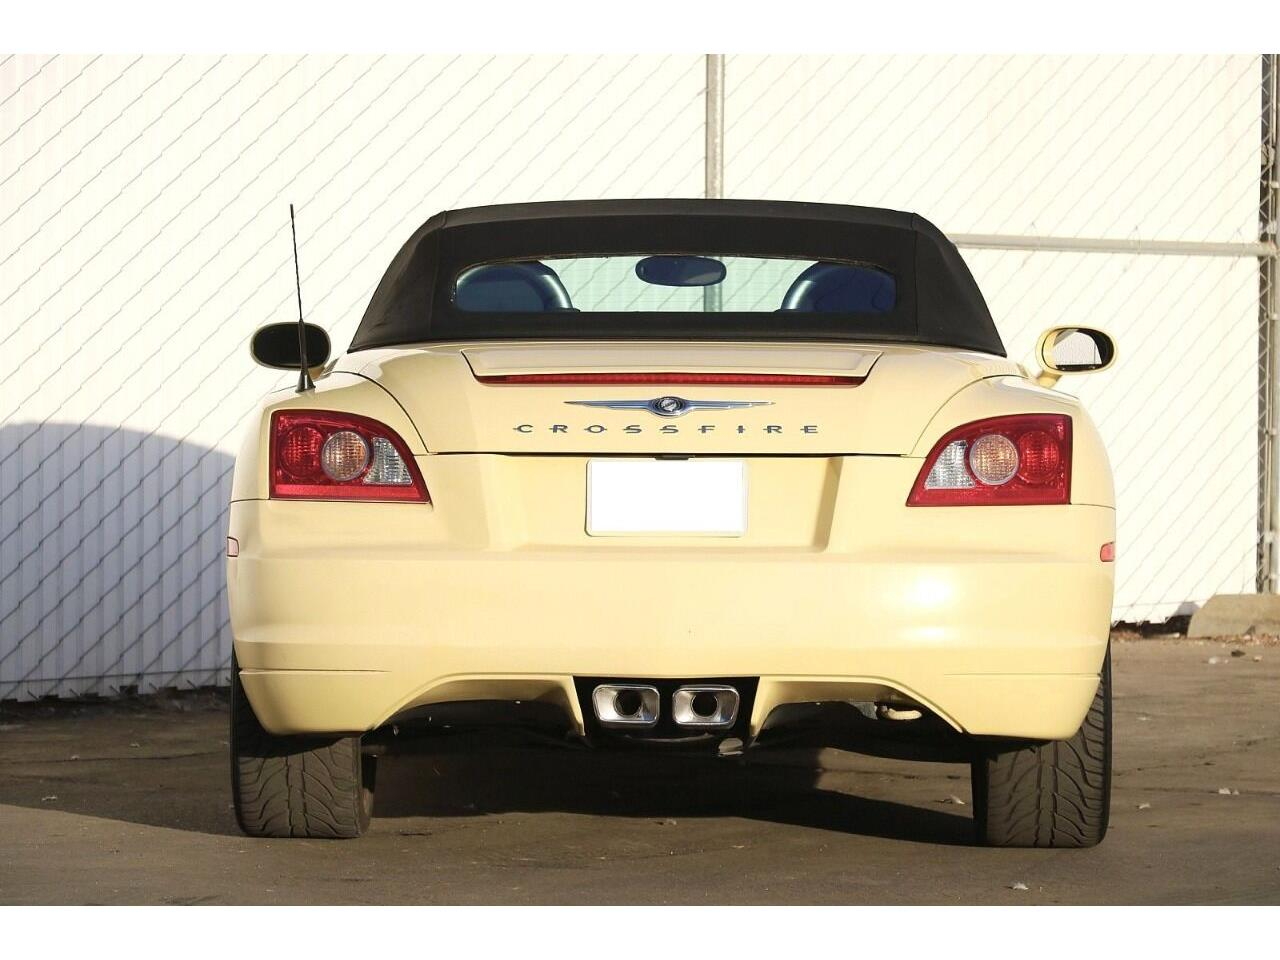 2005 Chrysler Crossfire (CC-1310527) for sale in Dinuba, California